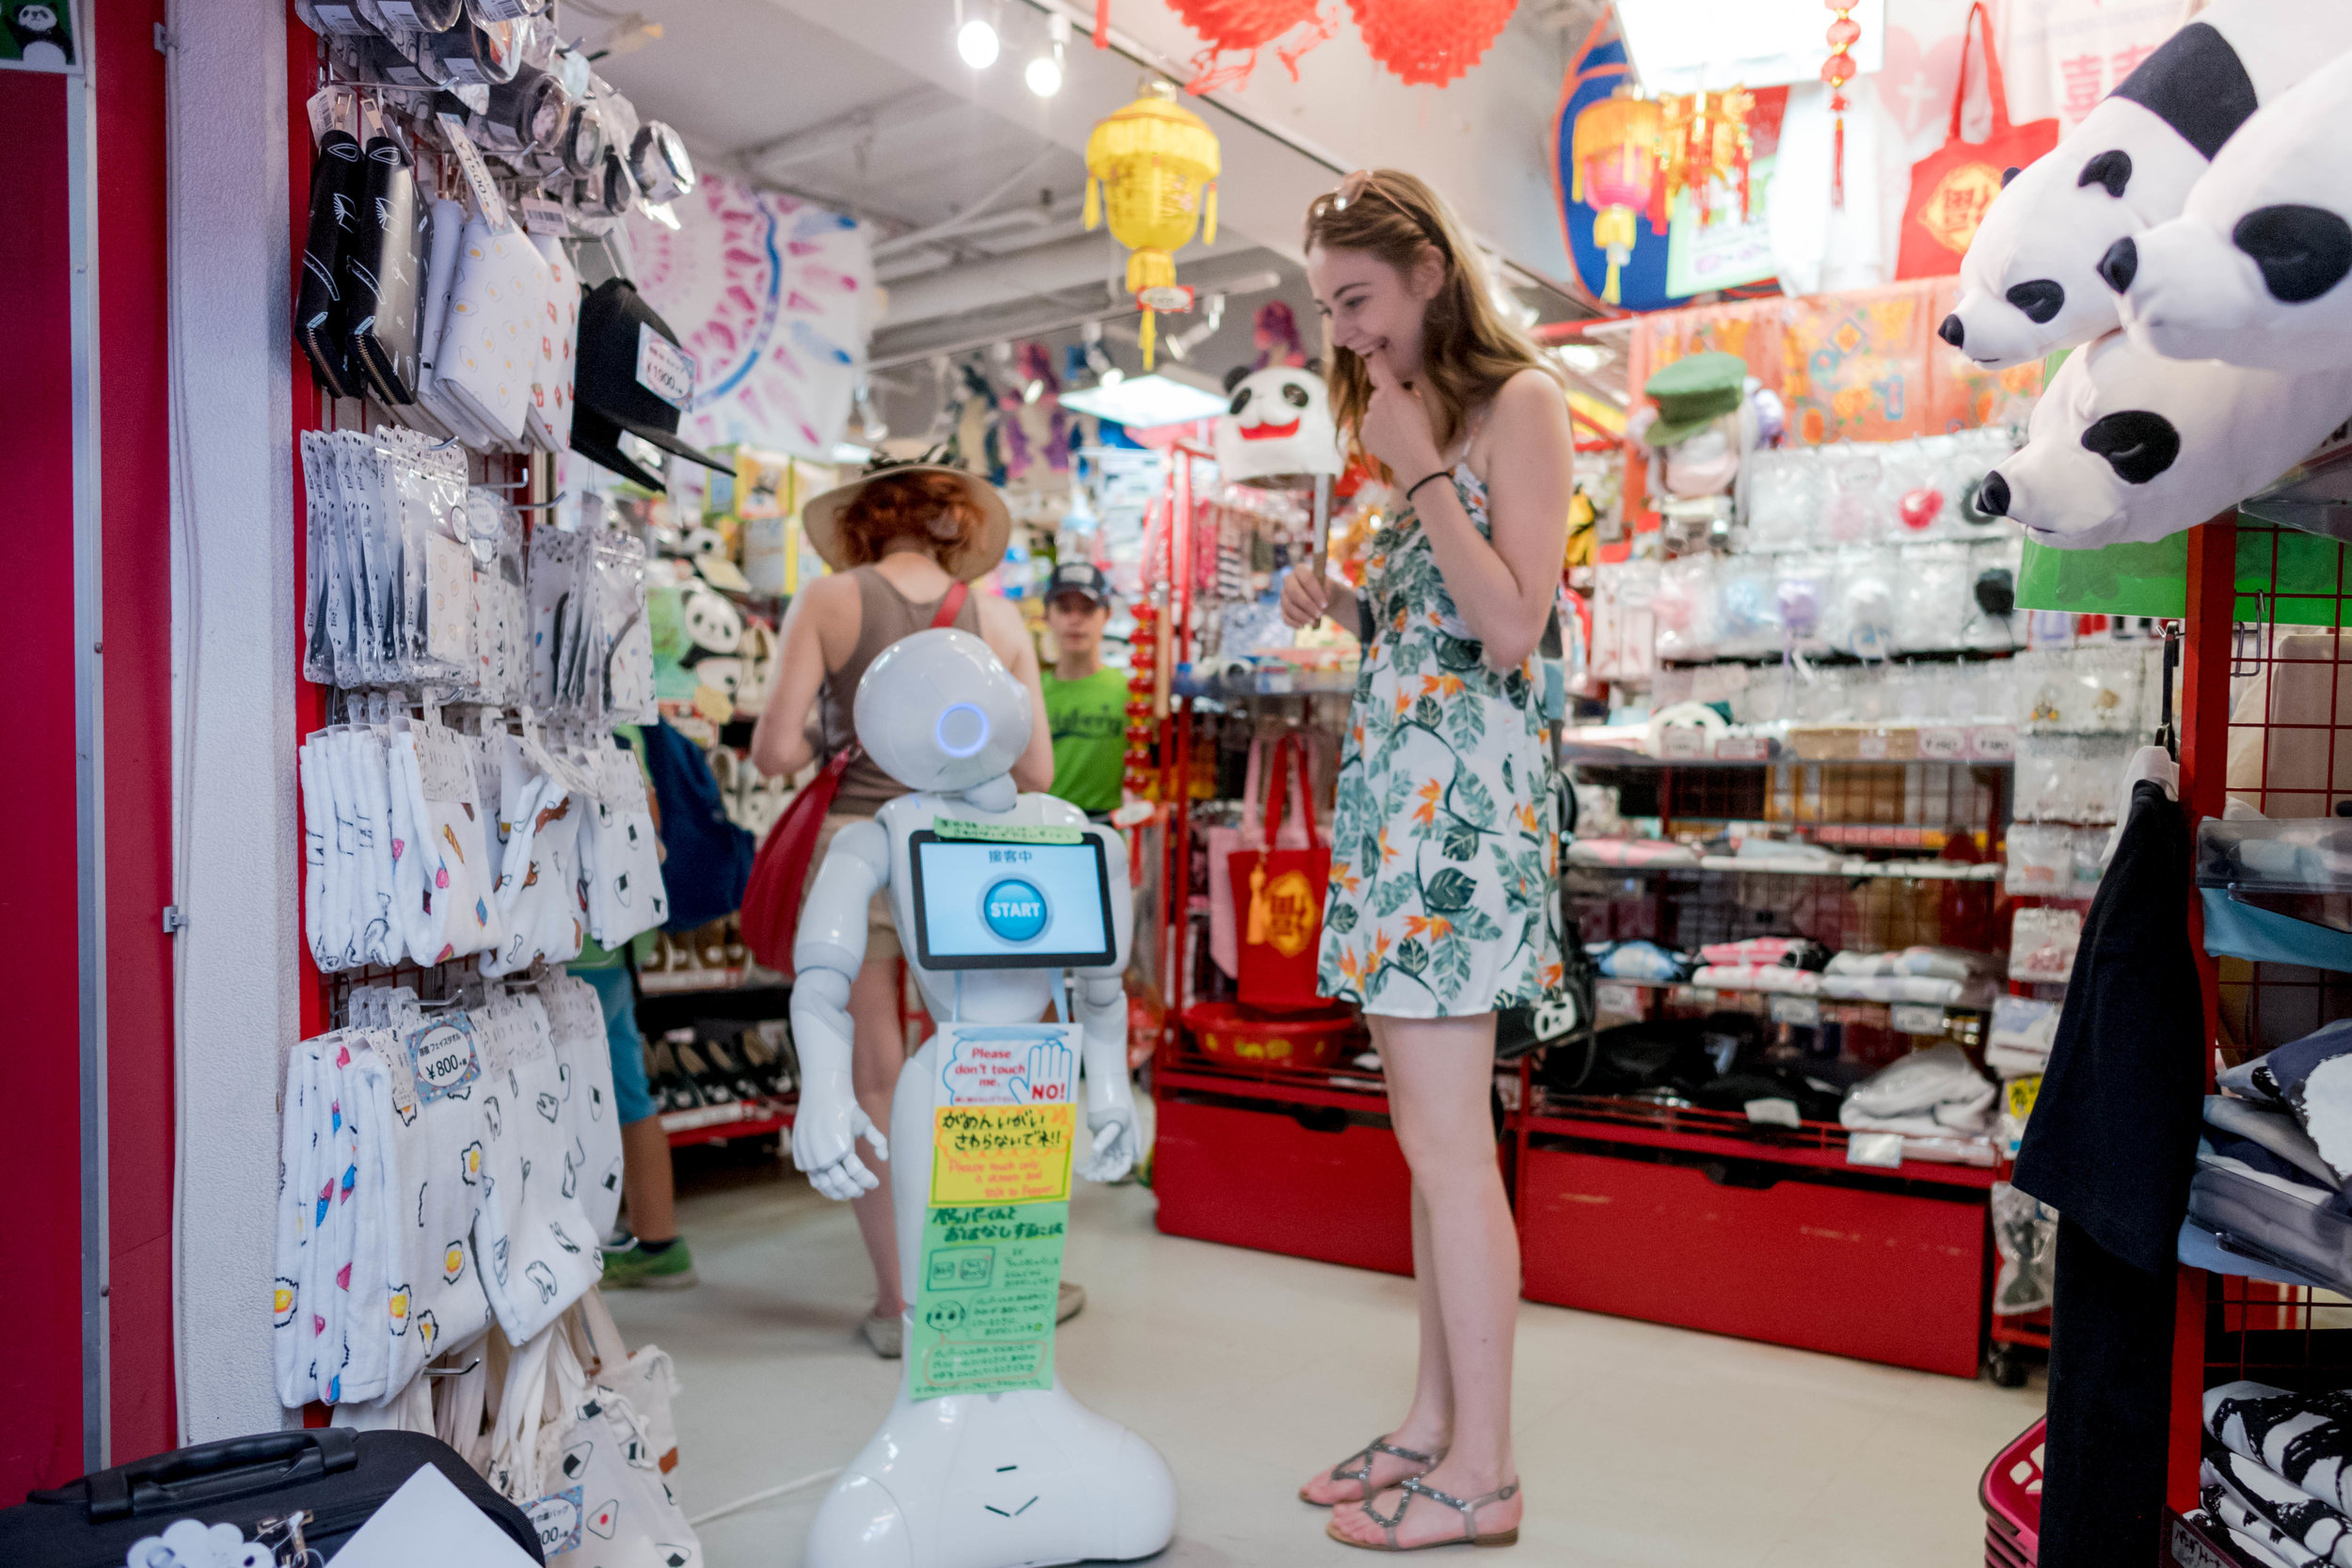 Being amused by a robot in the shop.